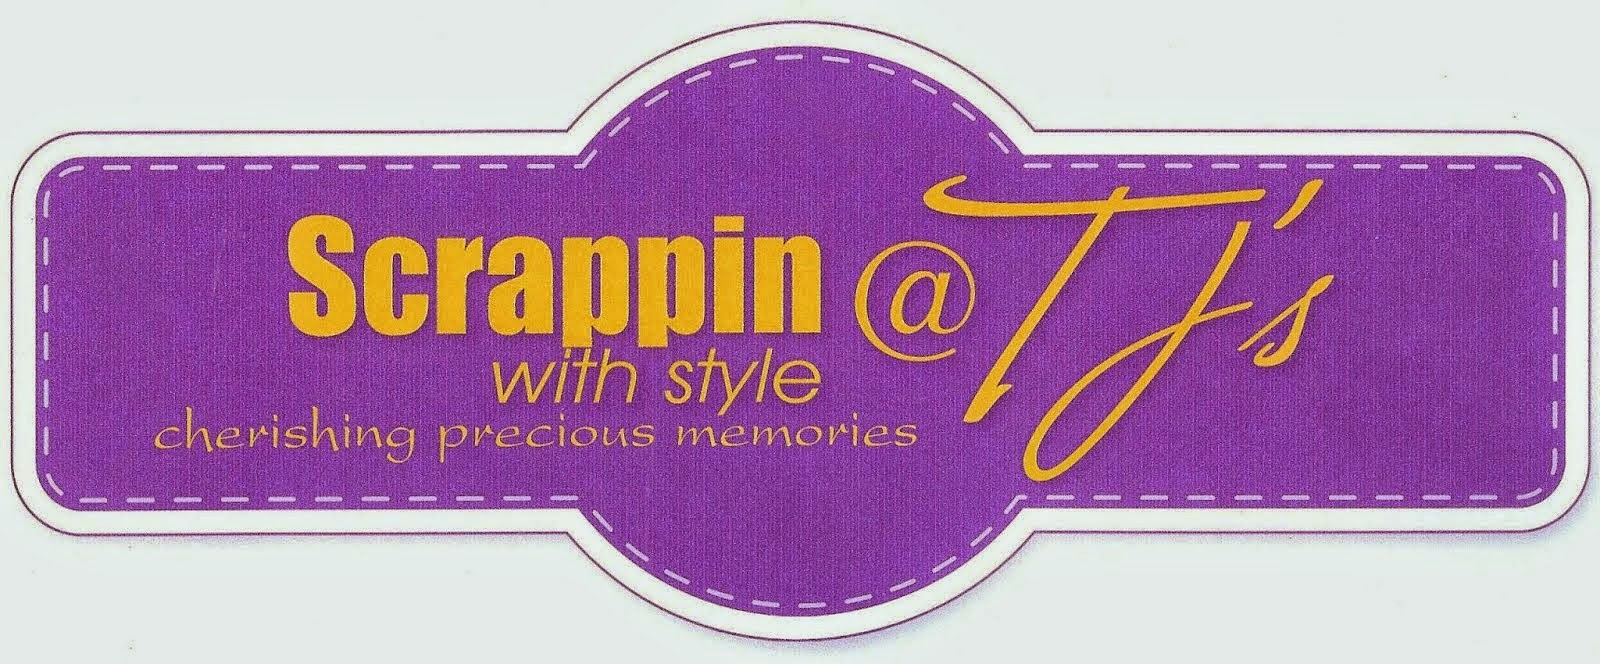 https://www.facebook.com/TjsScrappinWithStyle